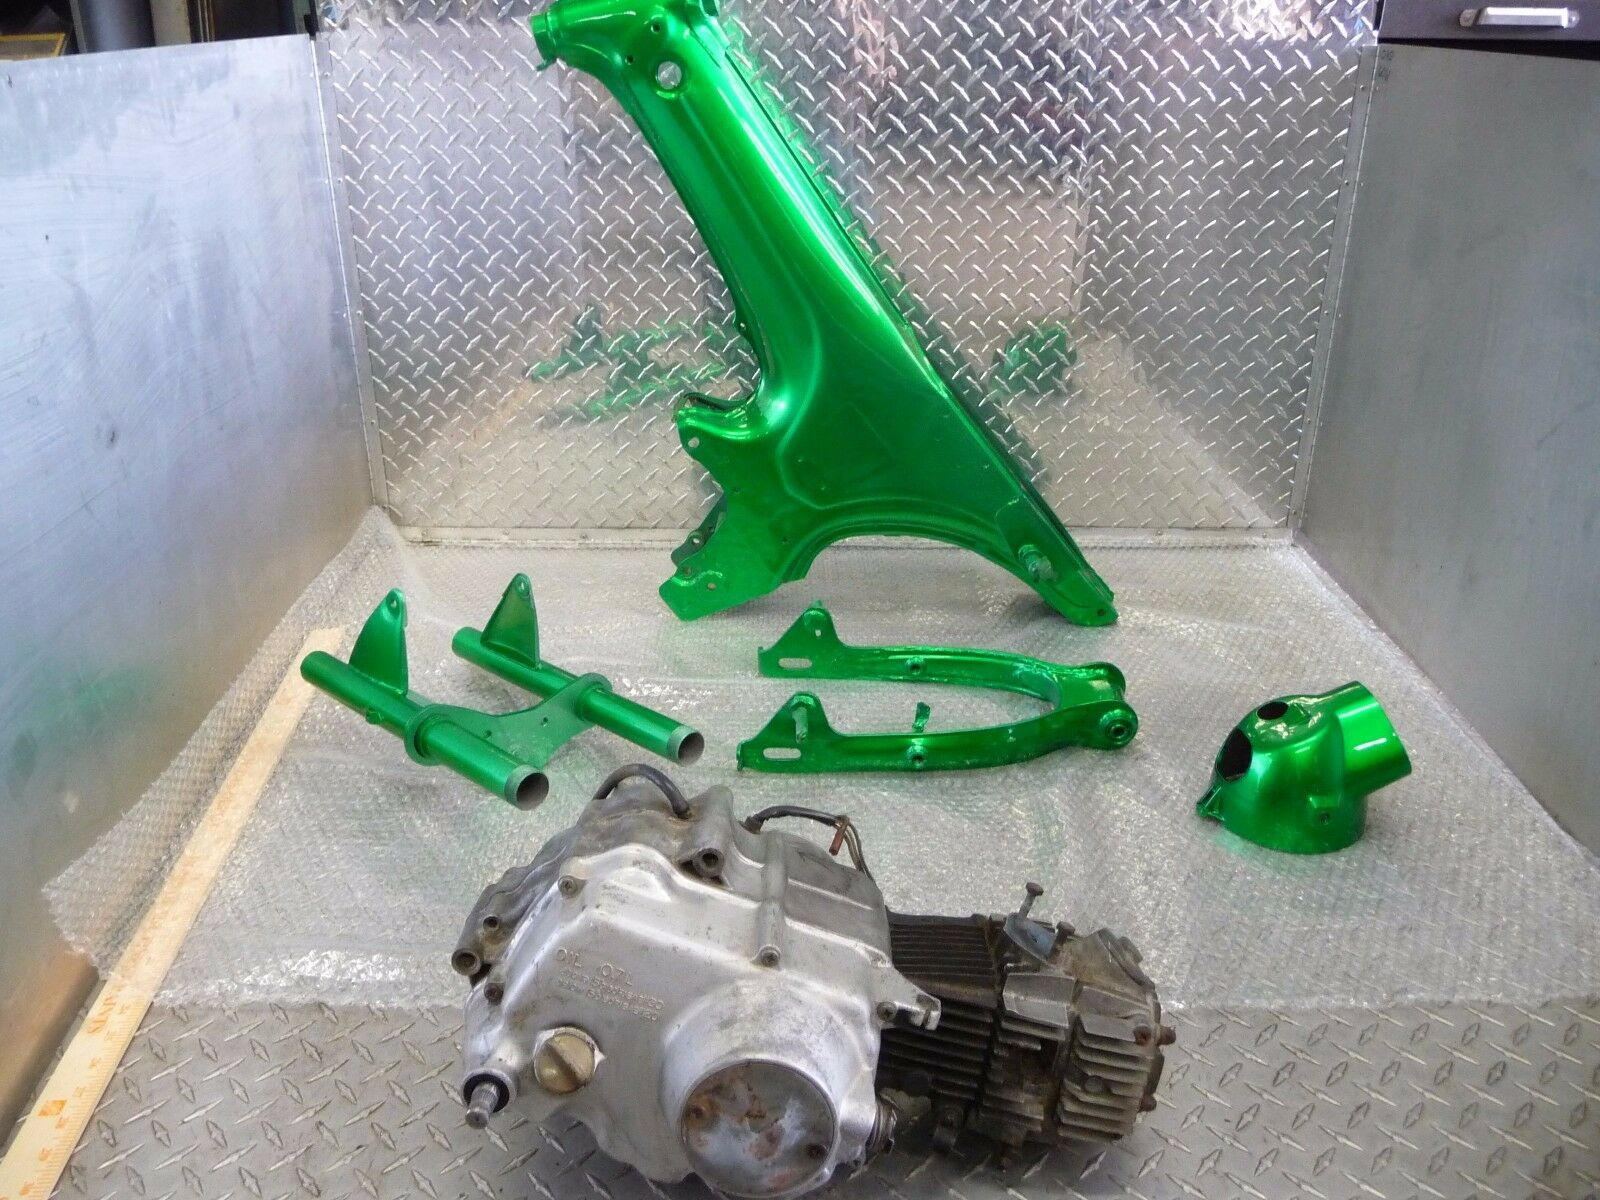 Honda Ct70 Ct 70 H Ct70h Frame Swingarm Triple Trees Forks Engine 1970 303 1 Of 12only Available